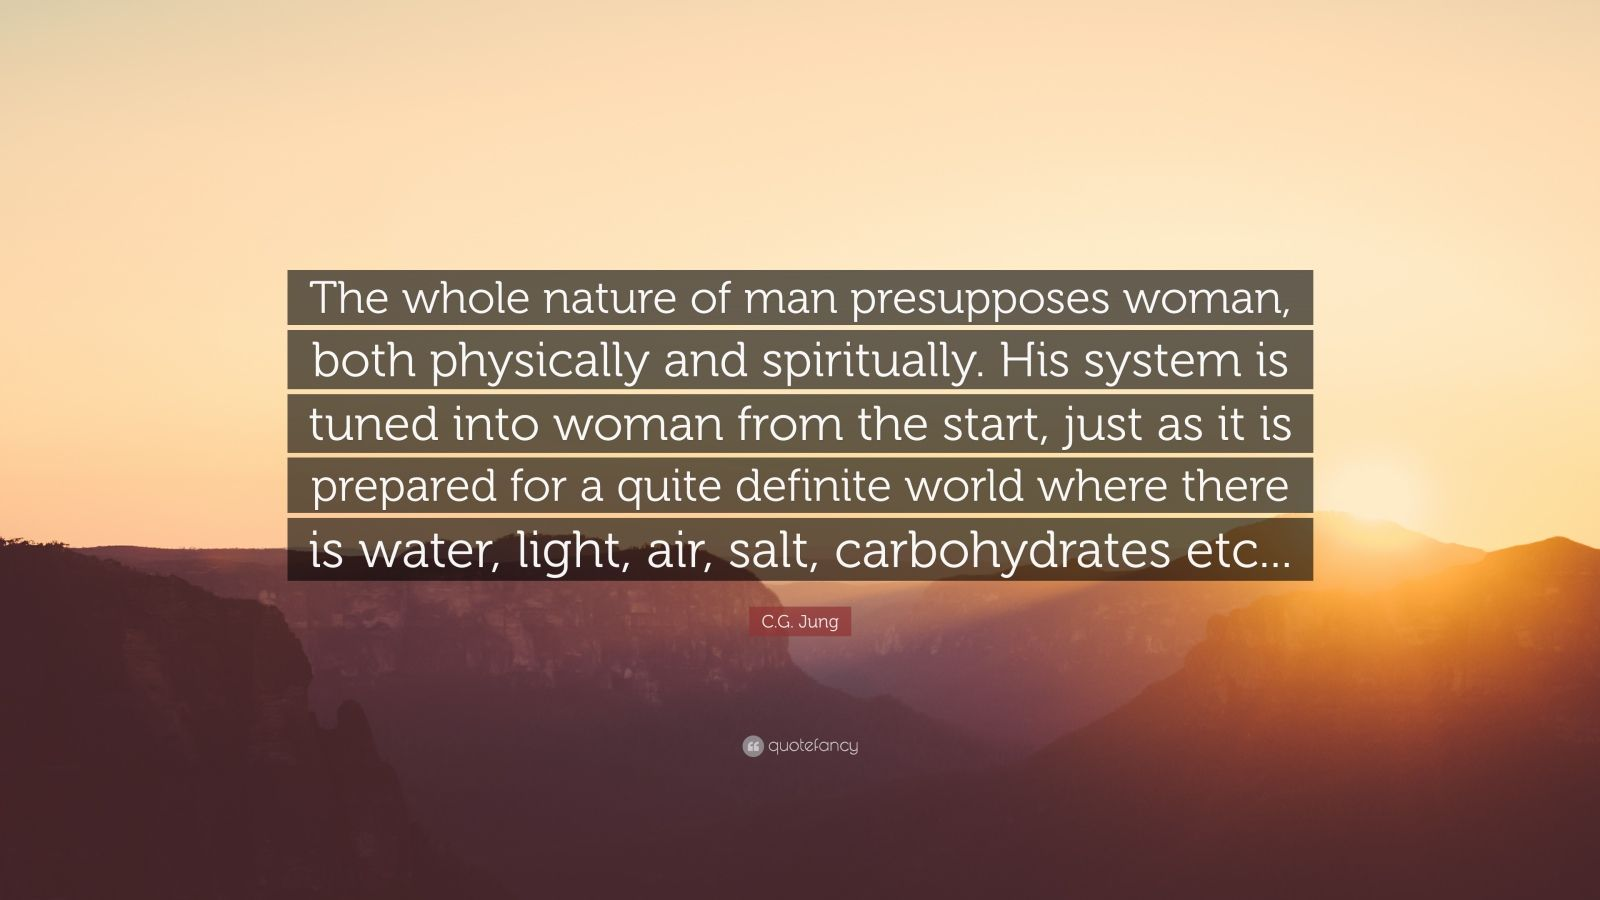 """C.G. Jung Quote: """"The whole nature of man presupposes woman, both physically and spiritually. His system is tuned into woman from the start, just as it is prepared for a quite definite world where there is water, light, air, salt, carbohydrates etc..."""""""